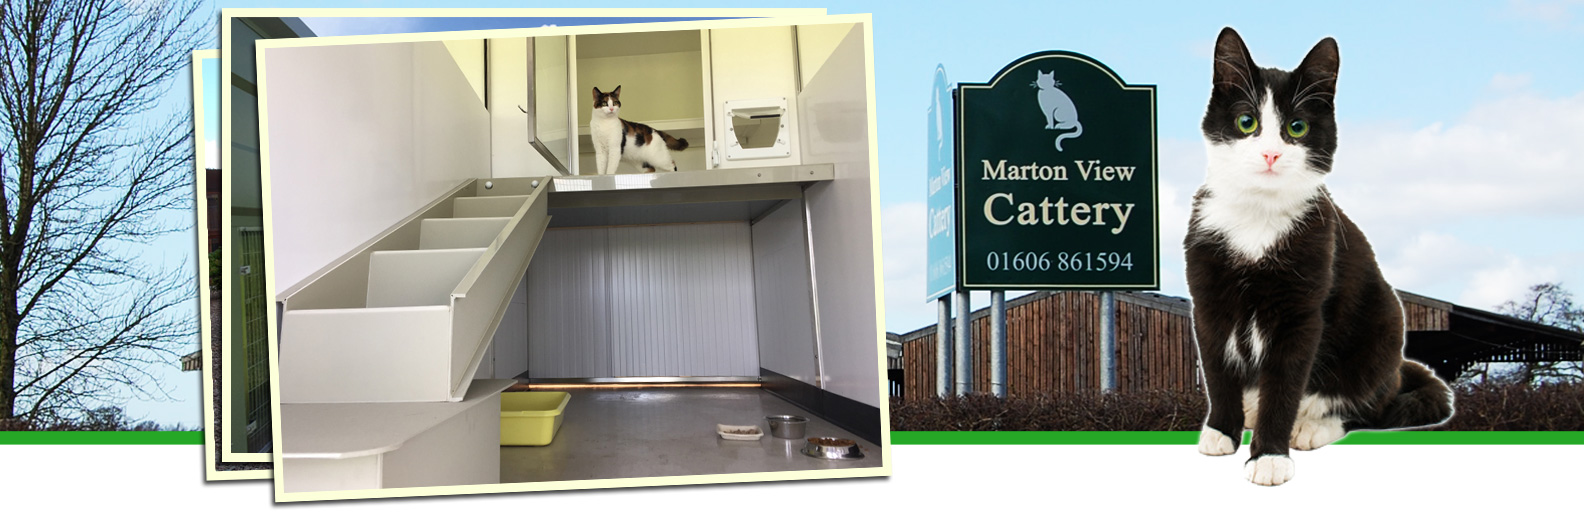 marton view cattery cheshire